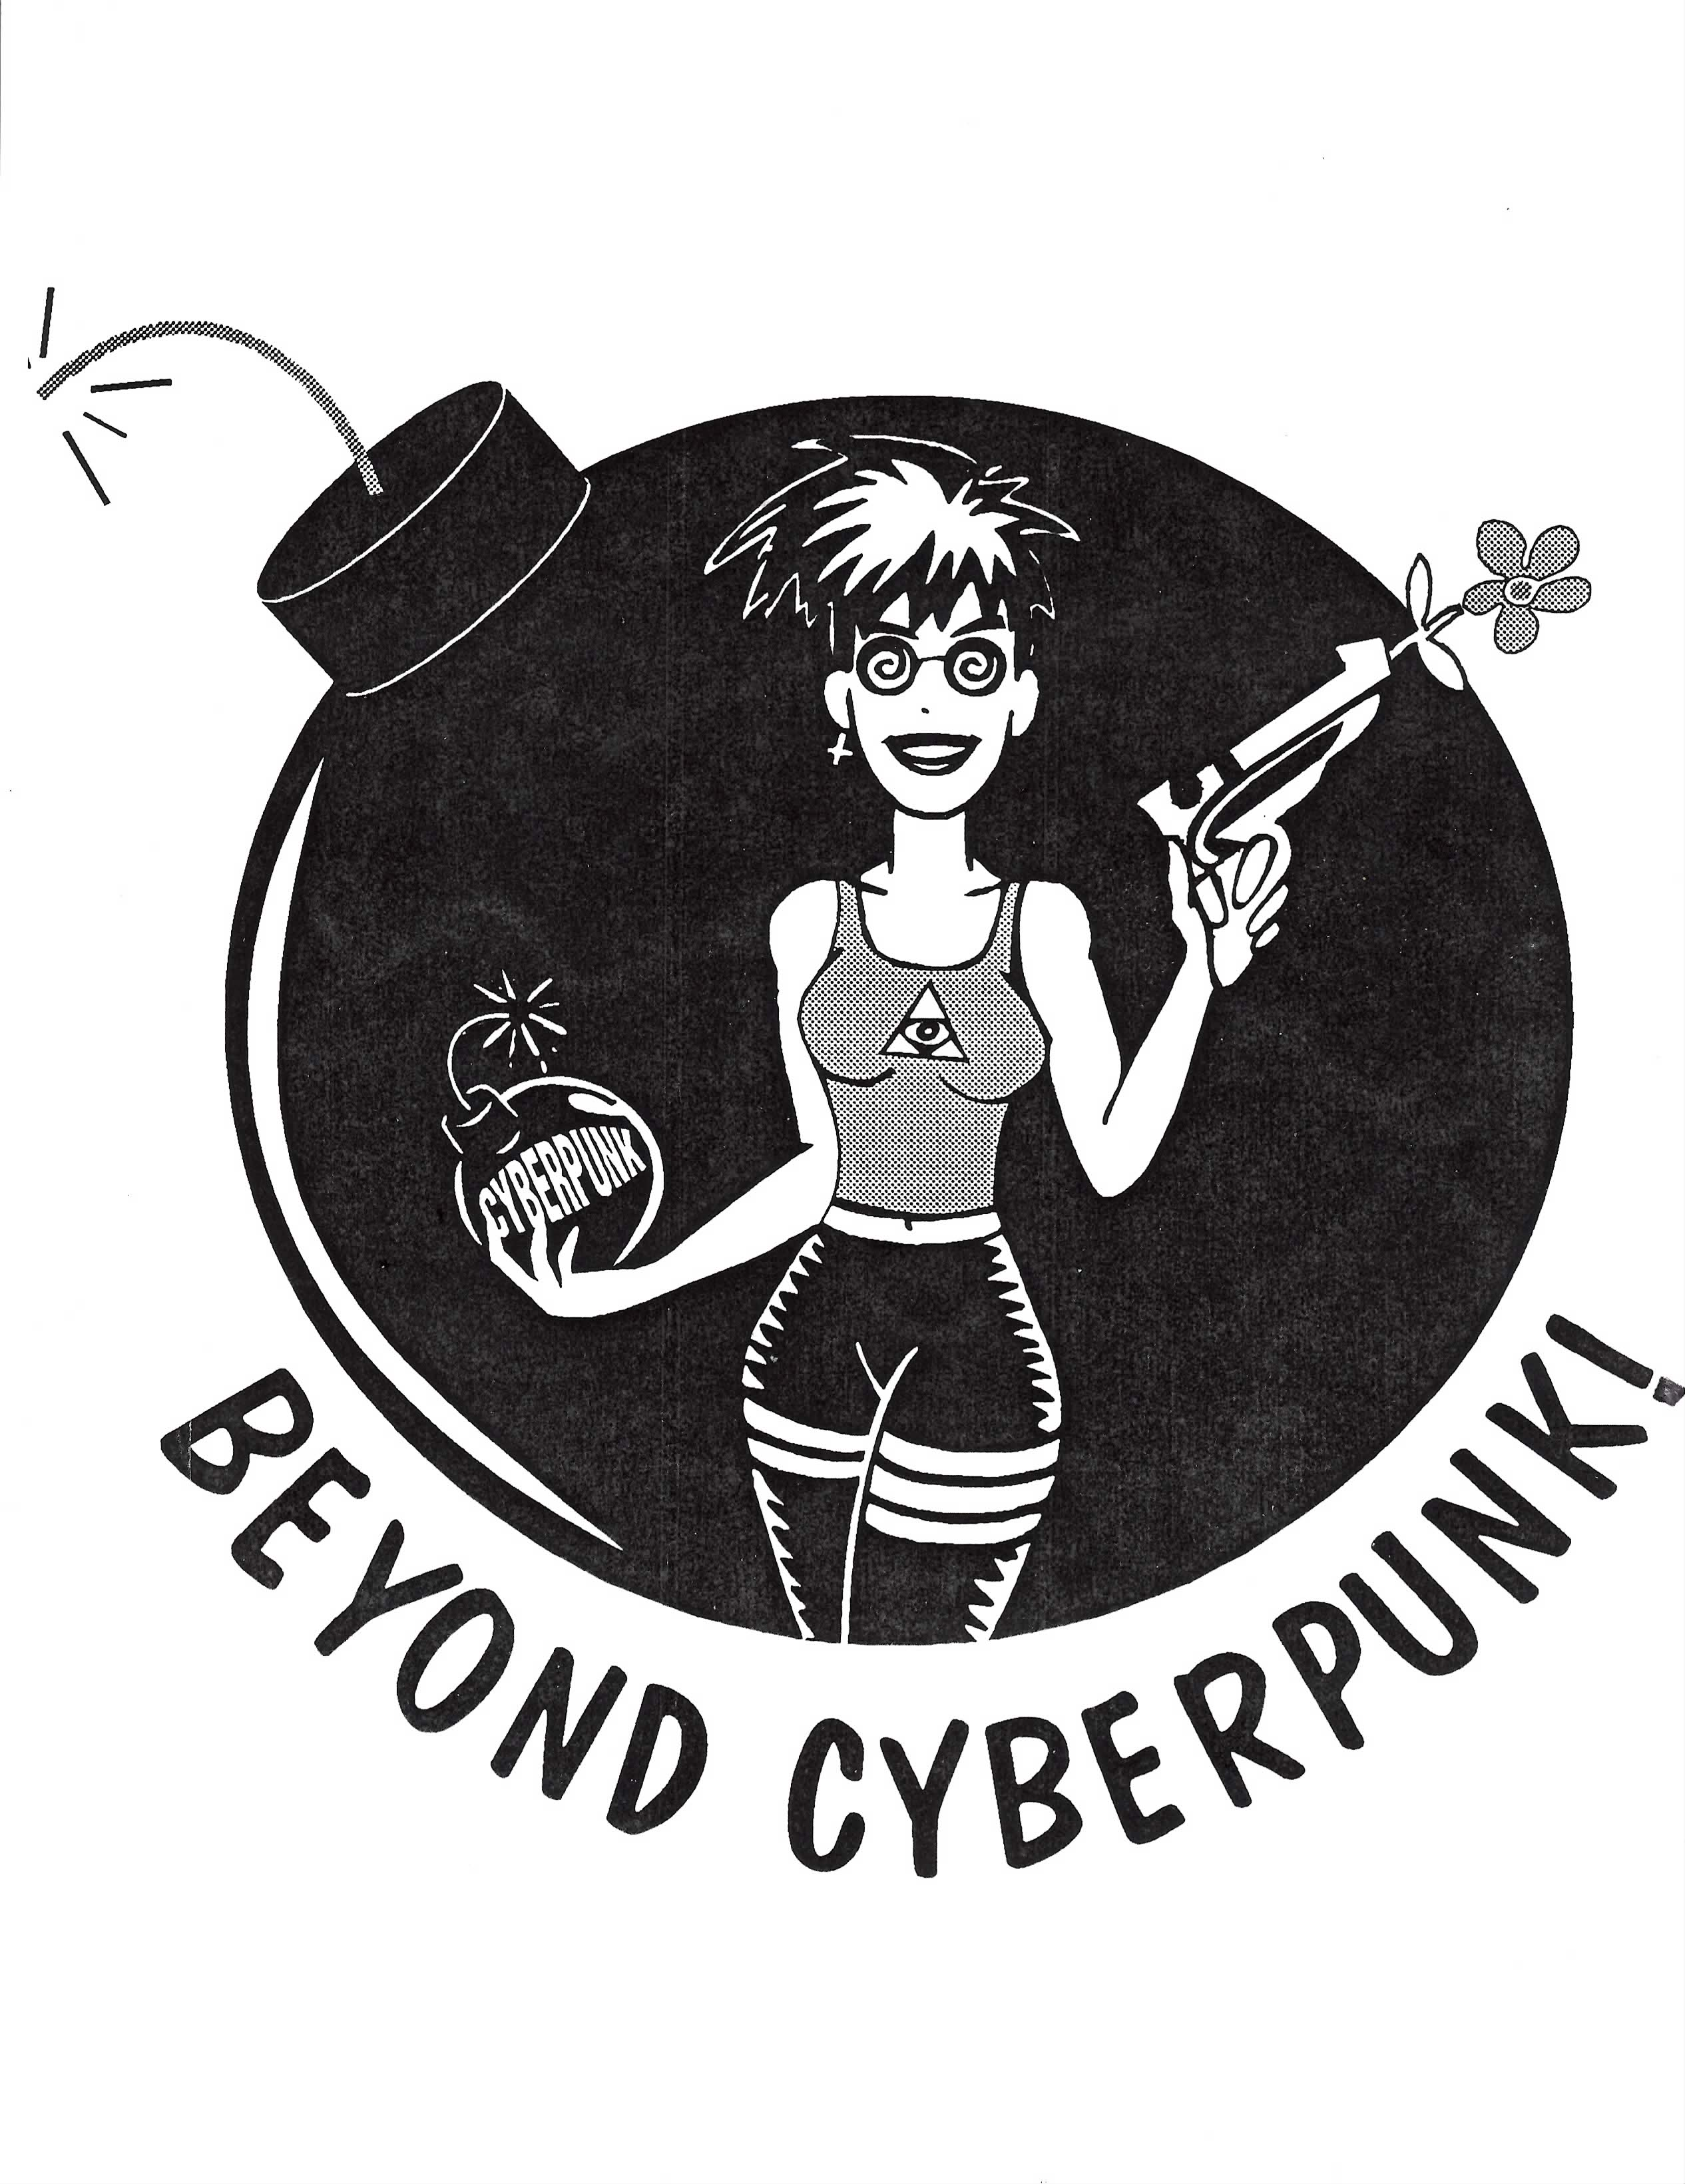 Into the Future! The Making of Beyond Cyberpunk! / Boing Boing